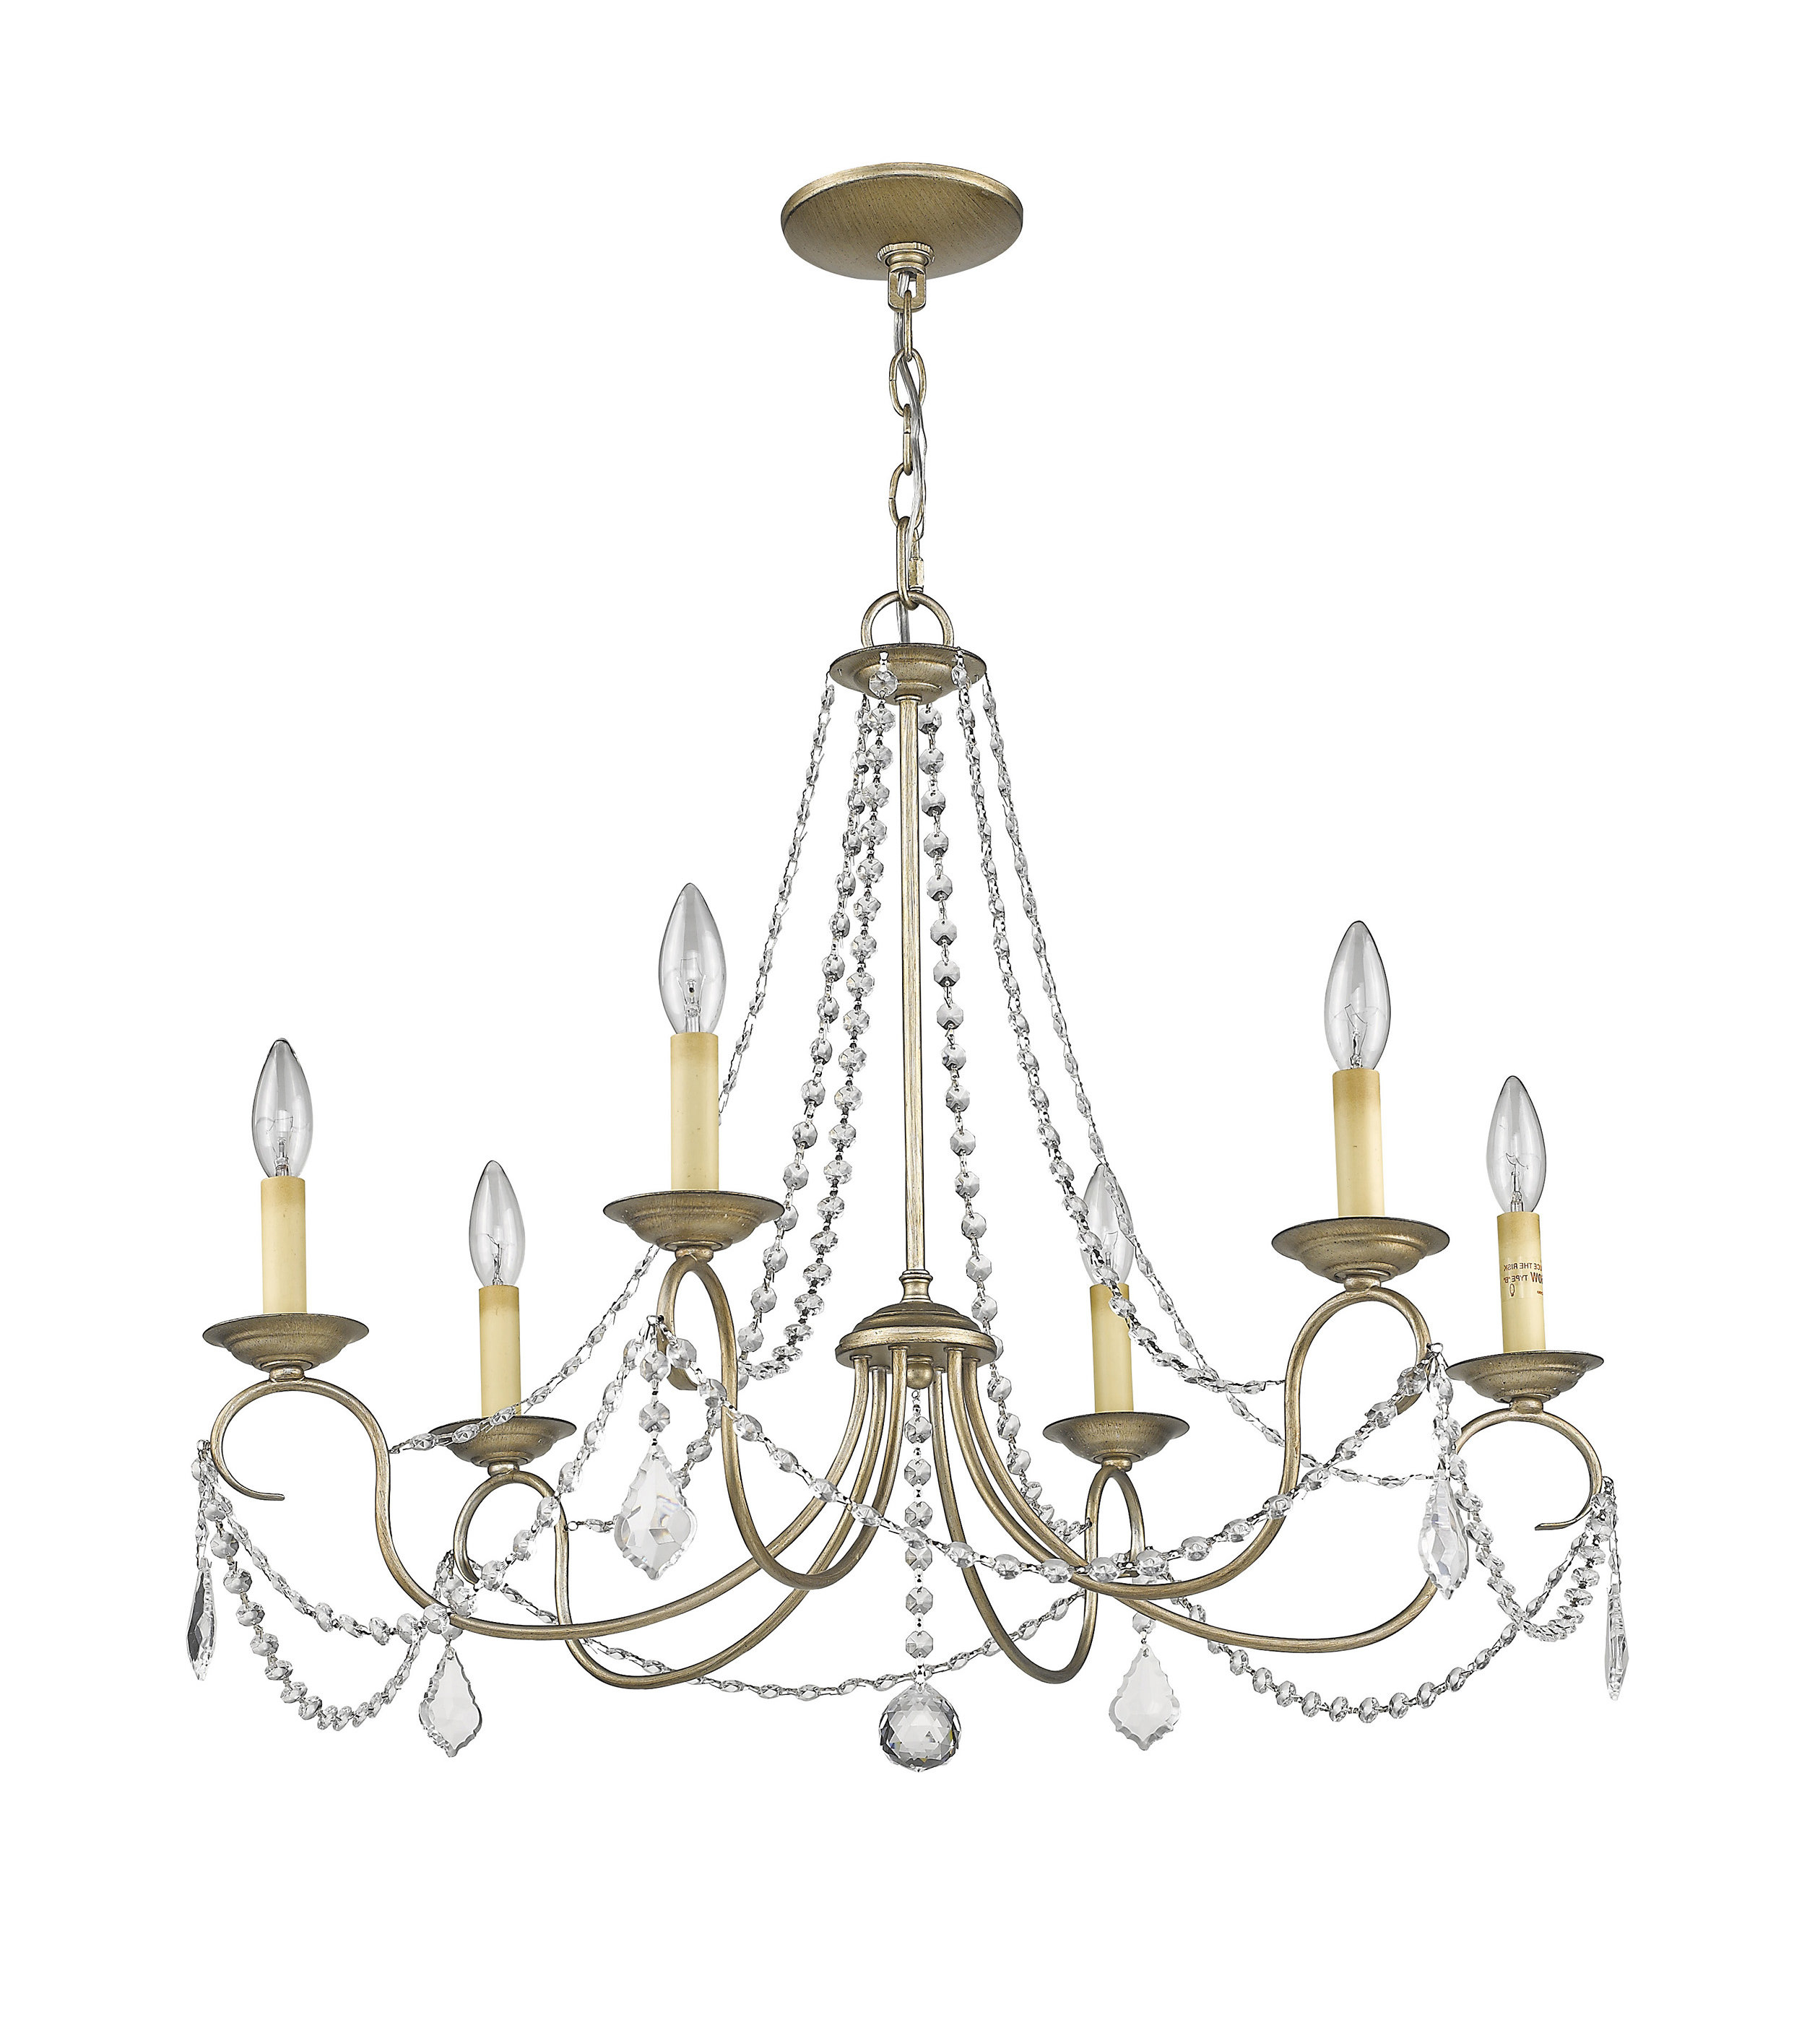 2019 Devana 6-Light Candle Style Chandelier with regard to Diaz 6-Light Candle Style Chandeliers